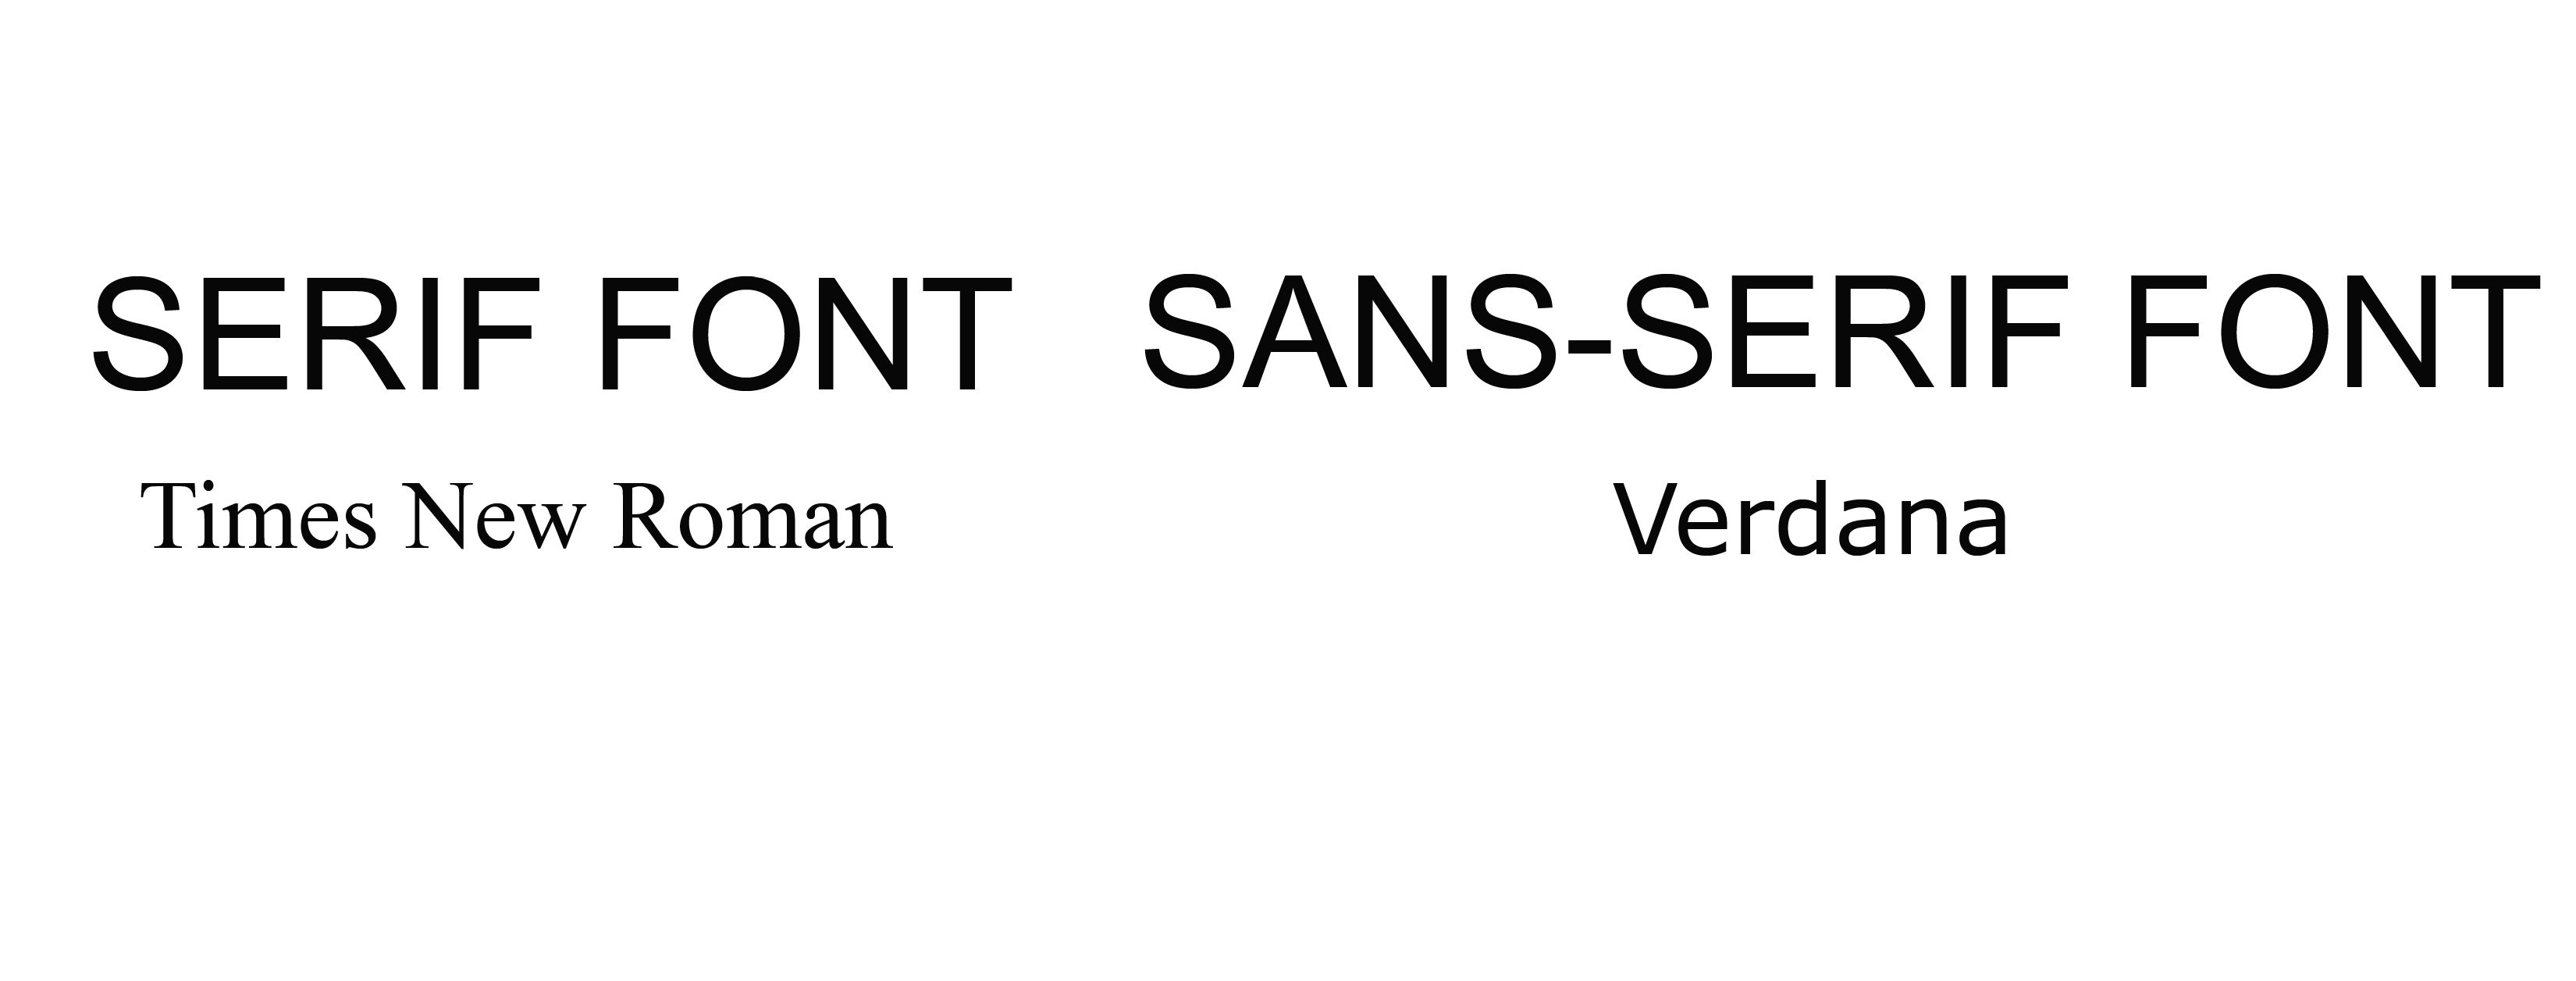 What Is a Serif Font?